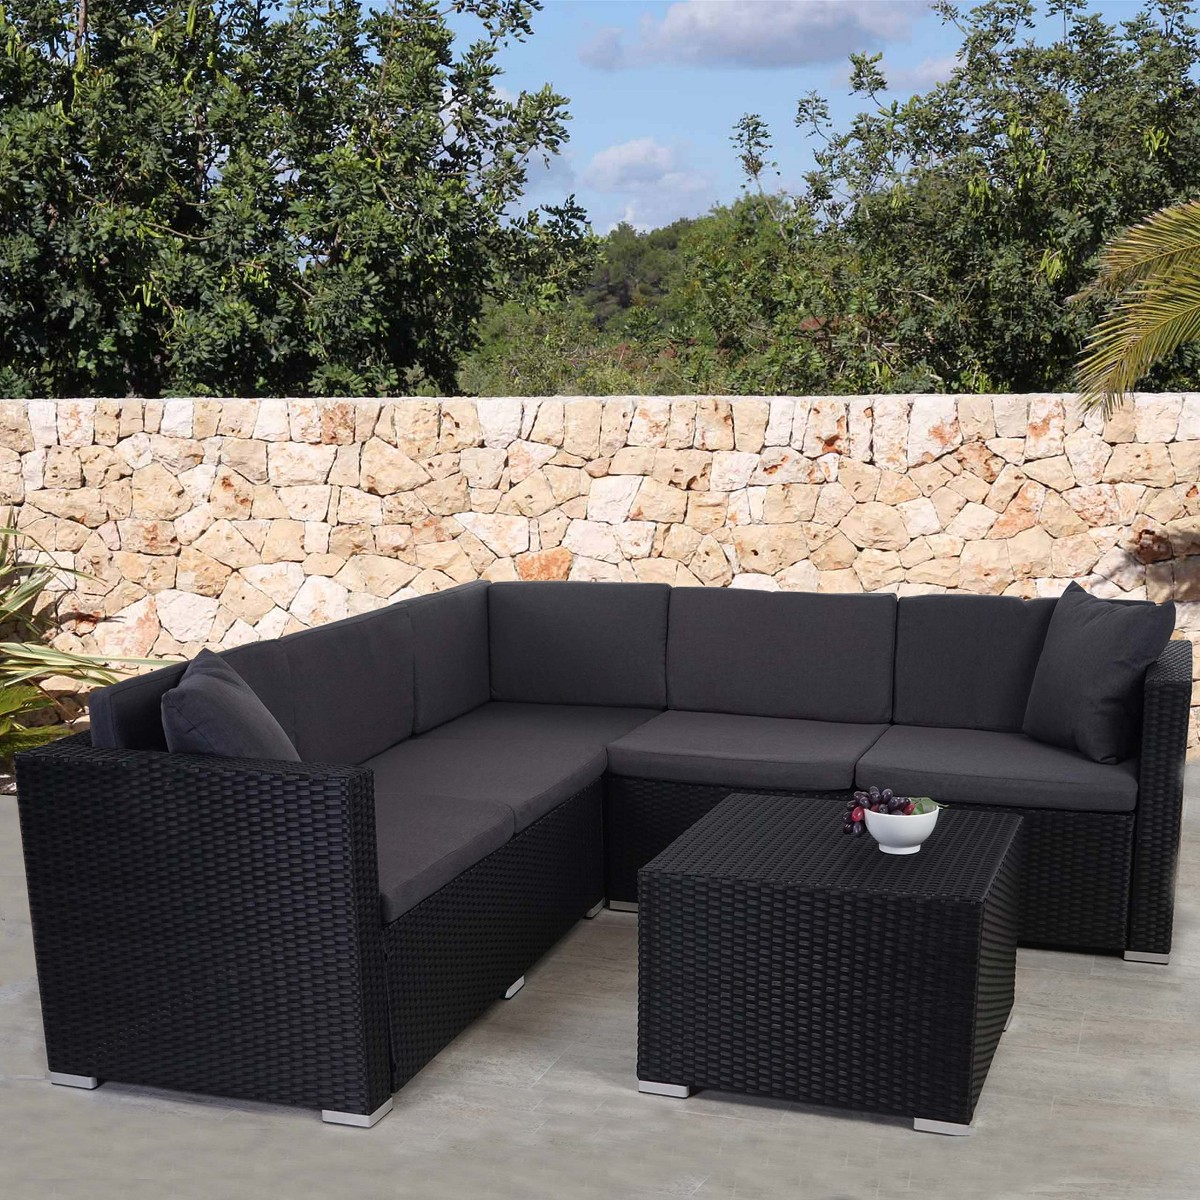 poly rattan rom basic sitzgruppe lounge set alu anthrazit. Black Bedroom Furniture Sets. Home Design Ideas